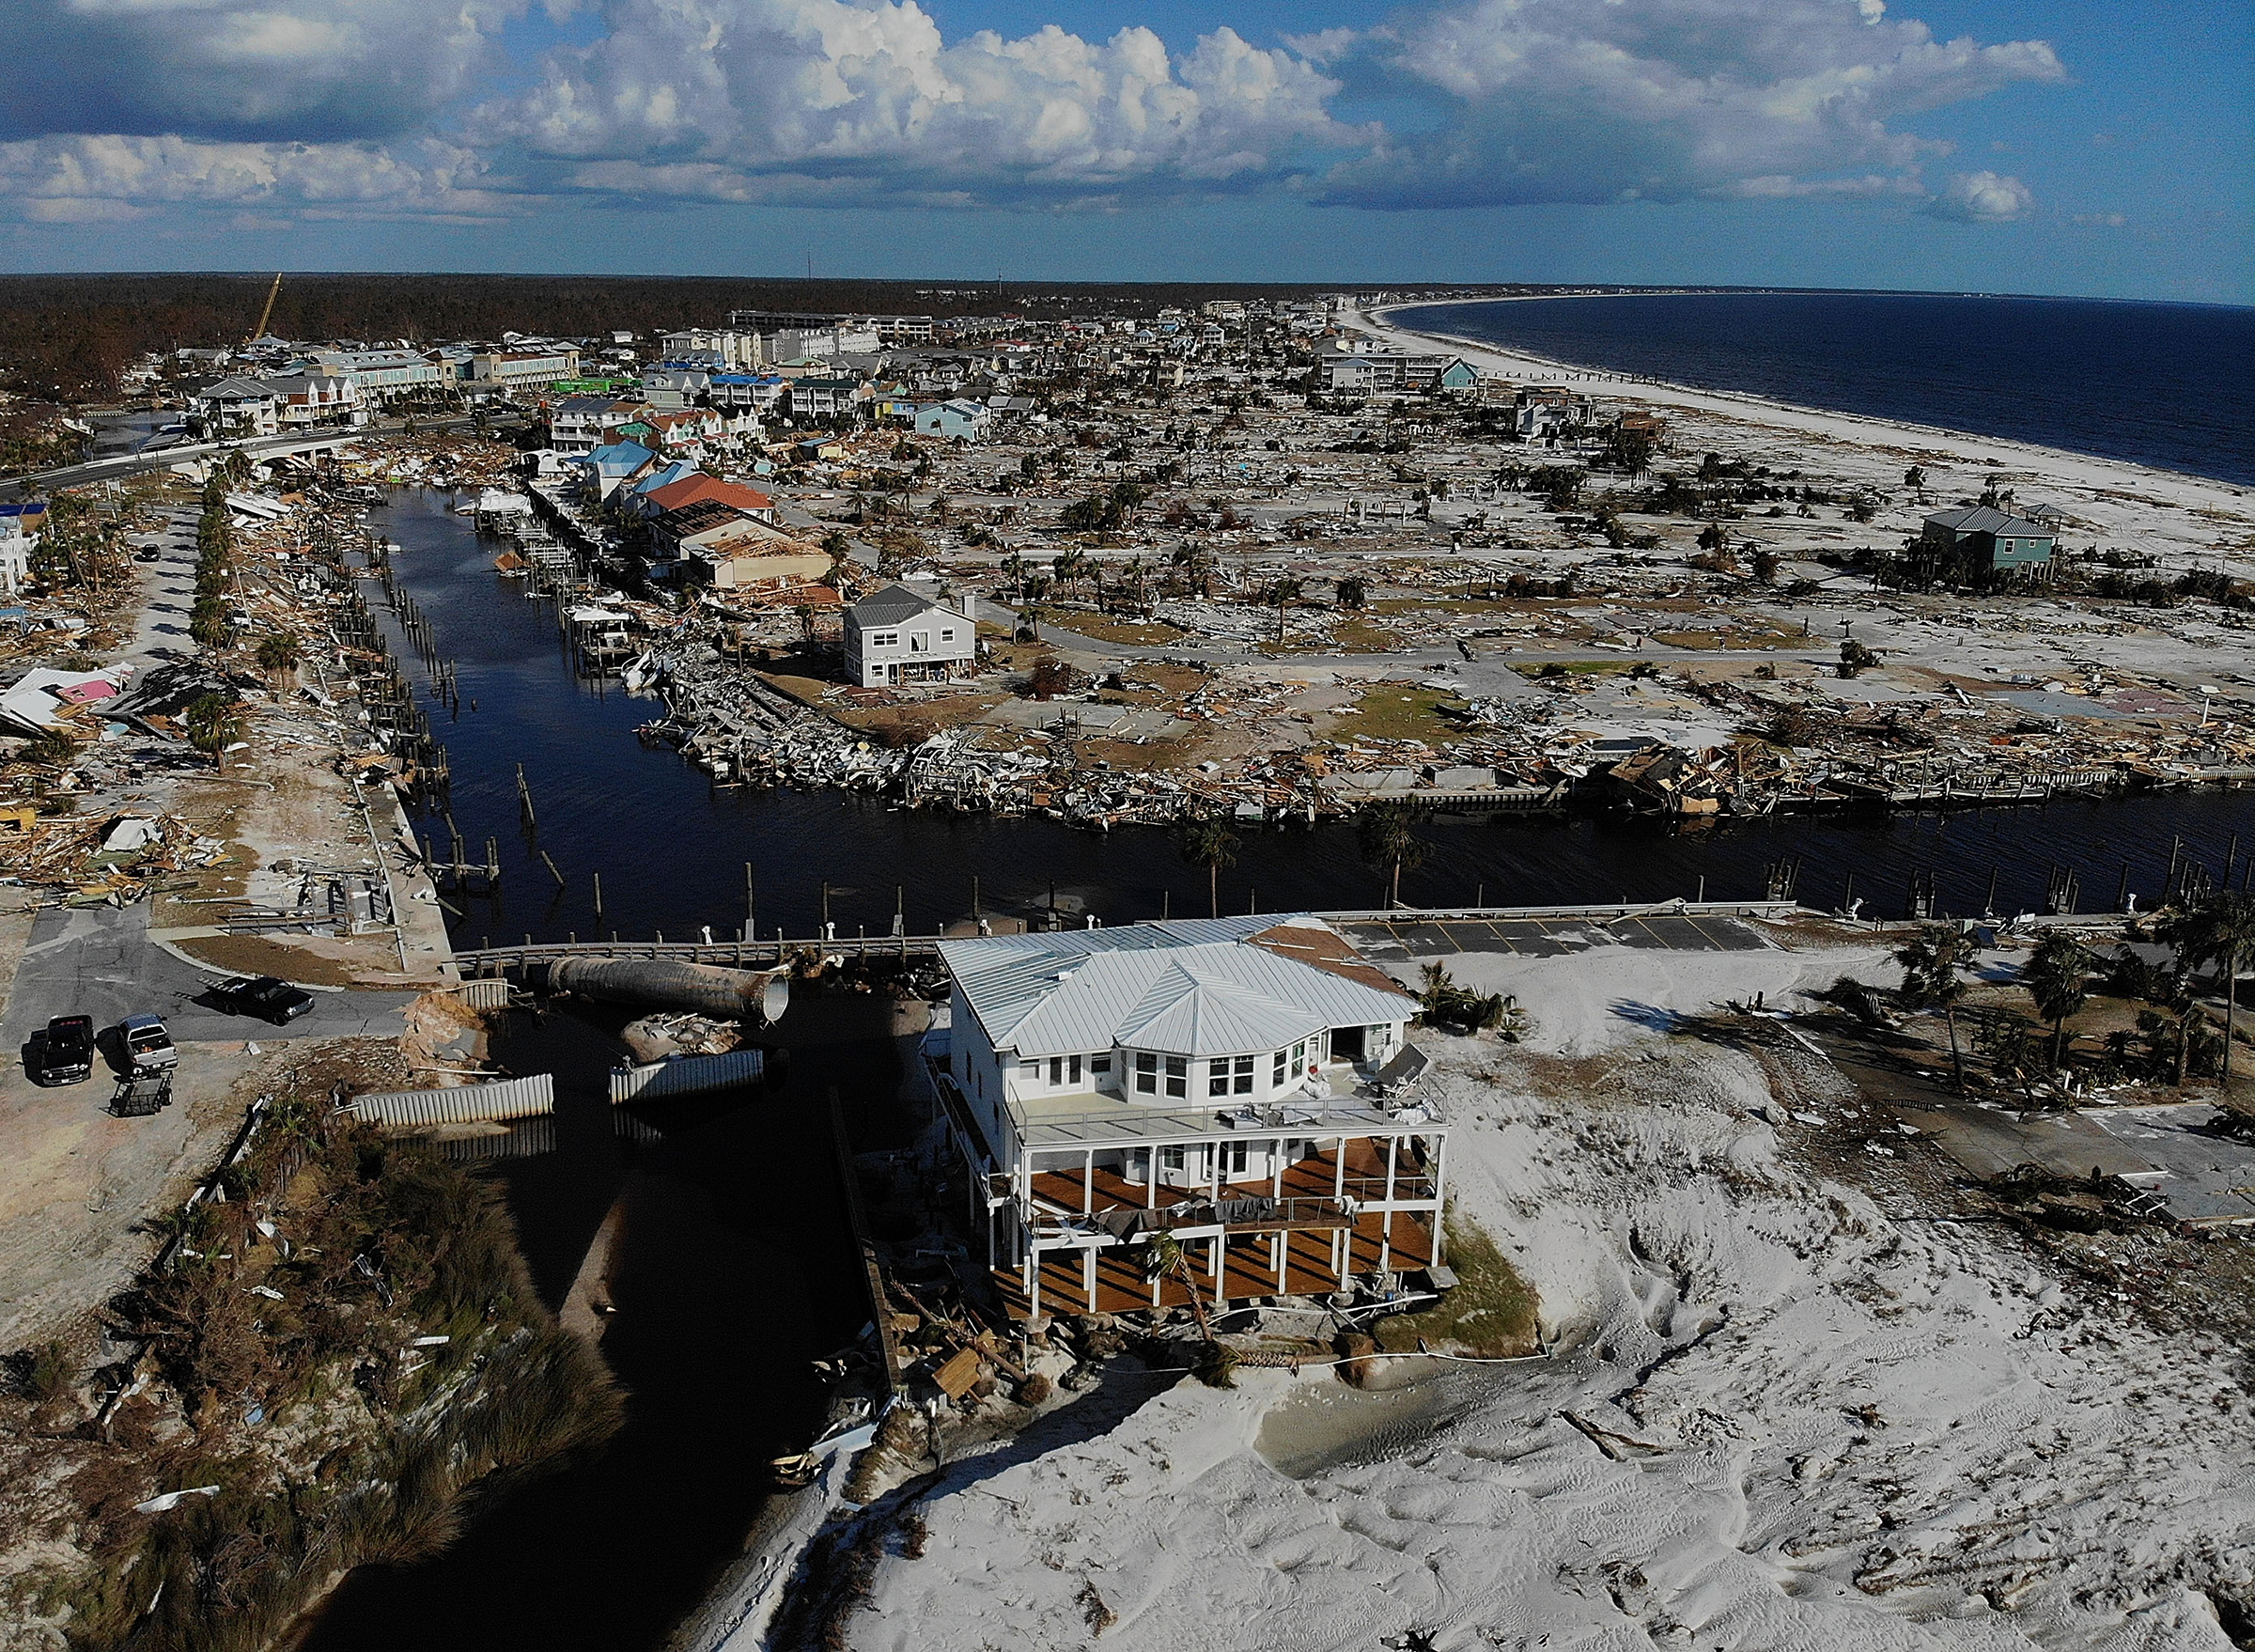 The aftermath of Hurricane Michael, which made a catastrophic landfall as a Category 5 hurricane near Mexico Beach, Fla., in October 2018.